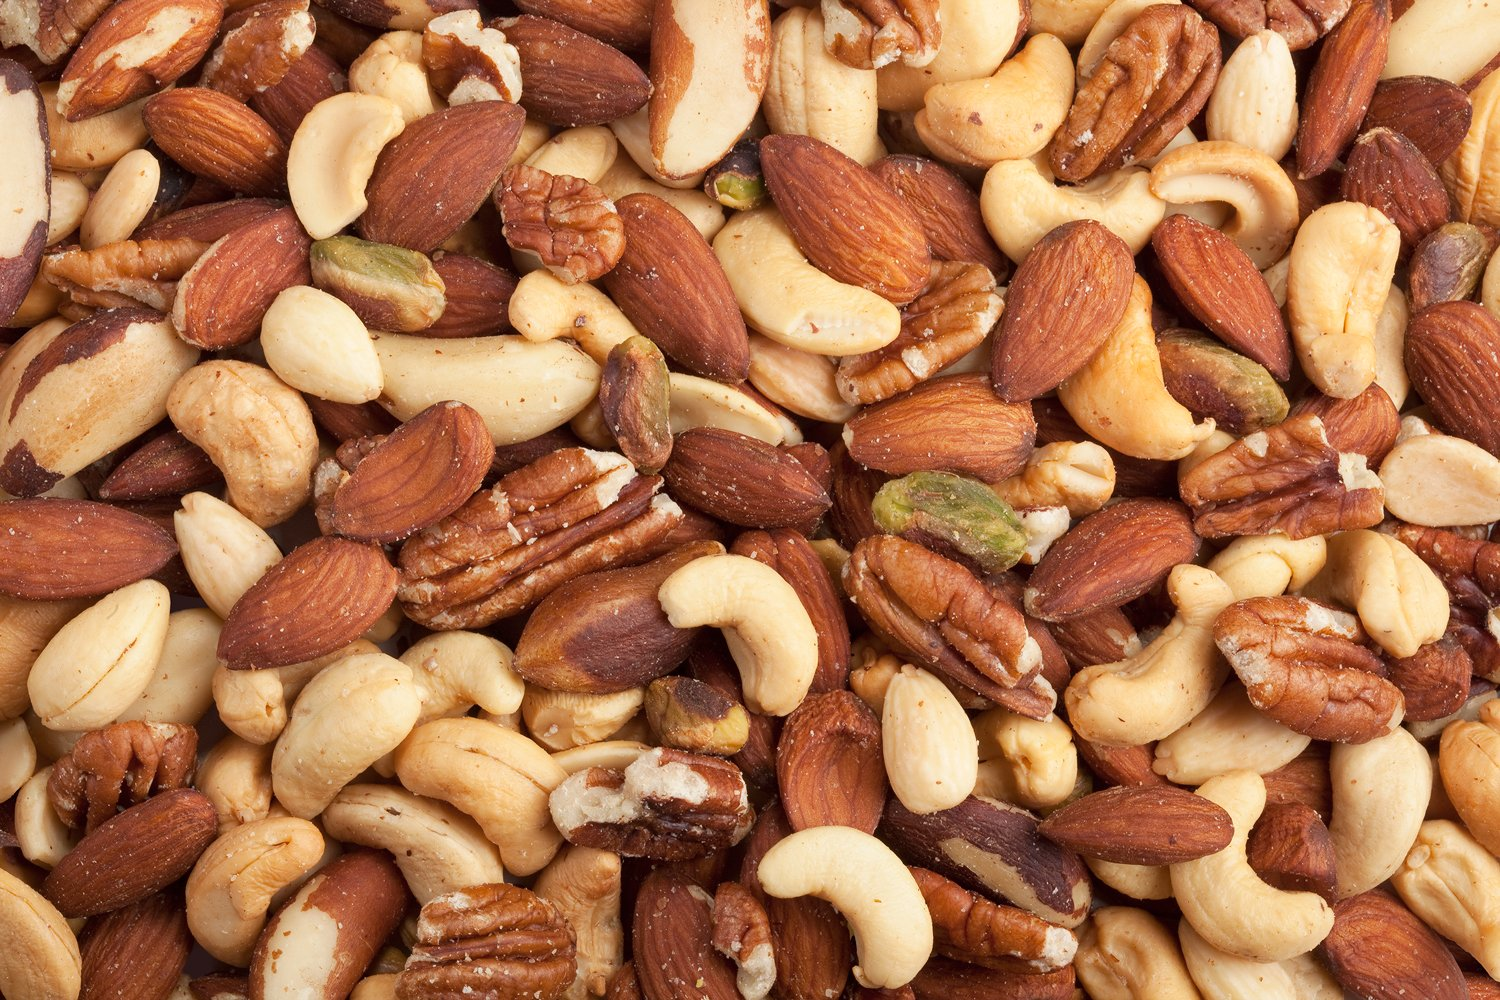 Can Dogs Eat Mixed Nuts?